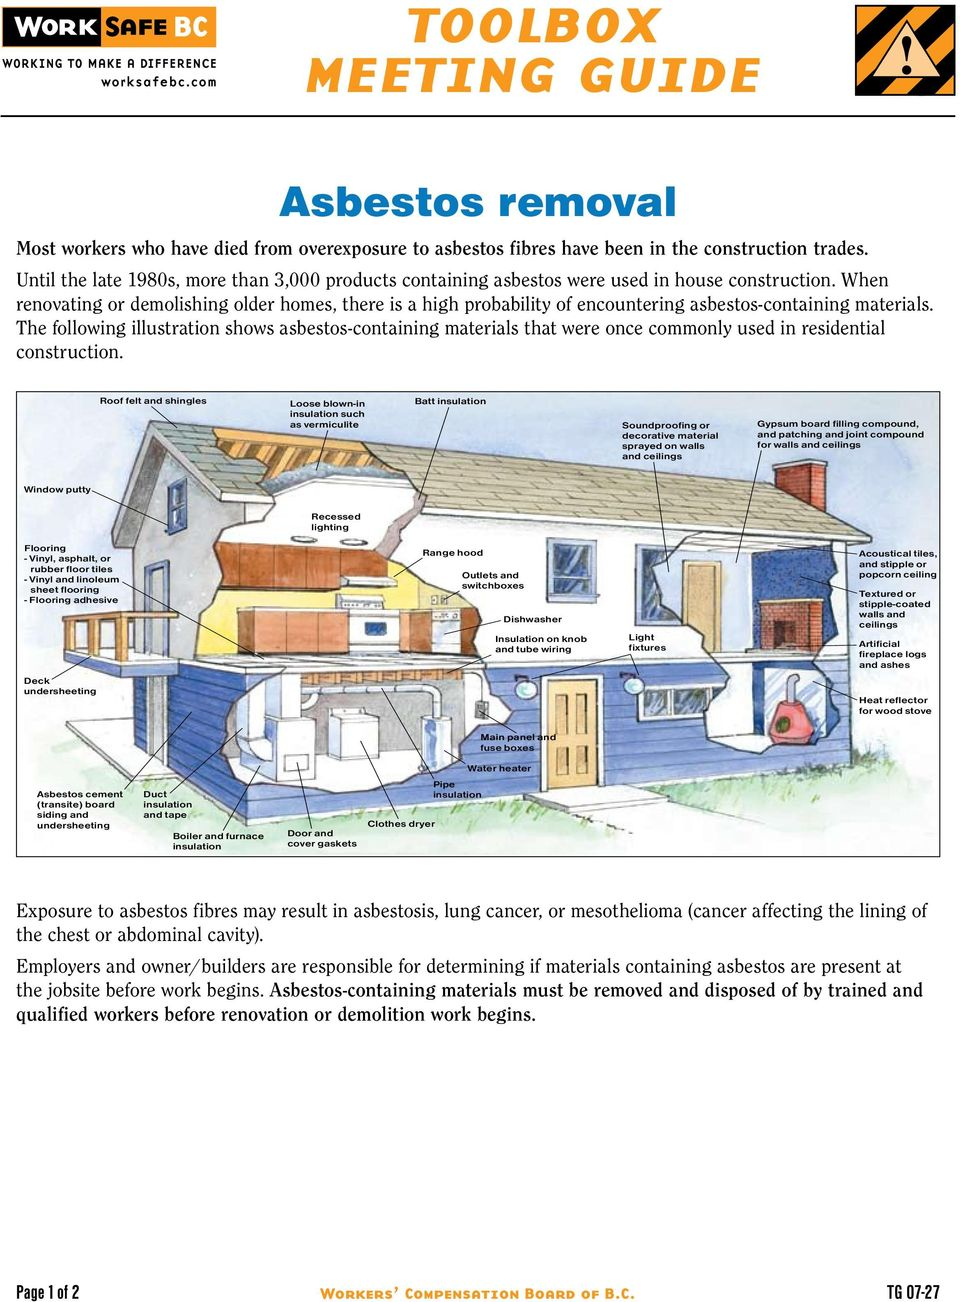 When renovating or demolishing older homes, there is a high probability of encountering asbestos-containing materials.